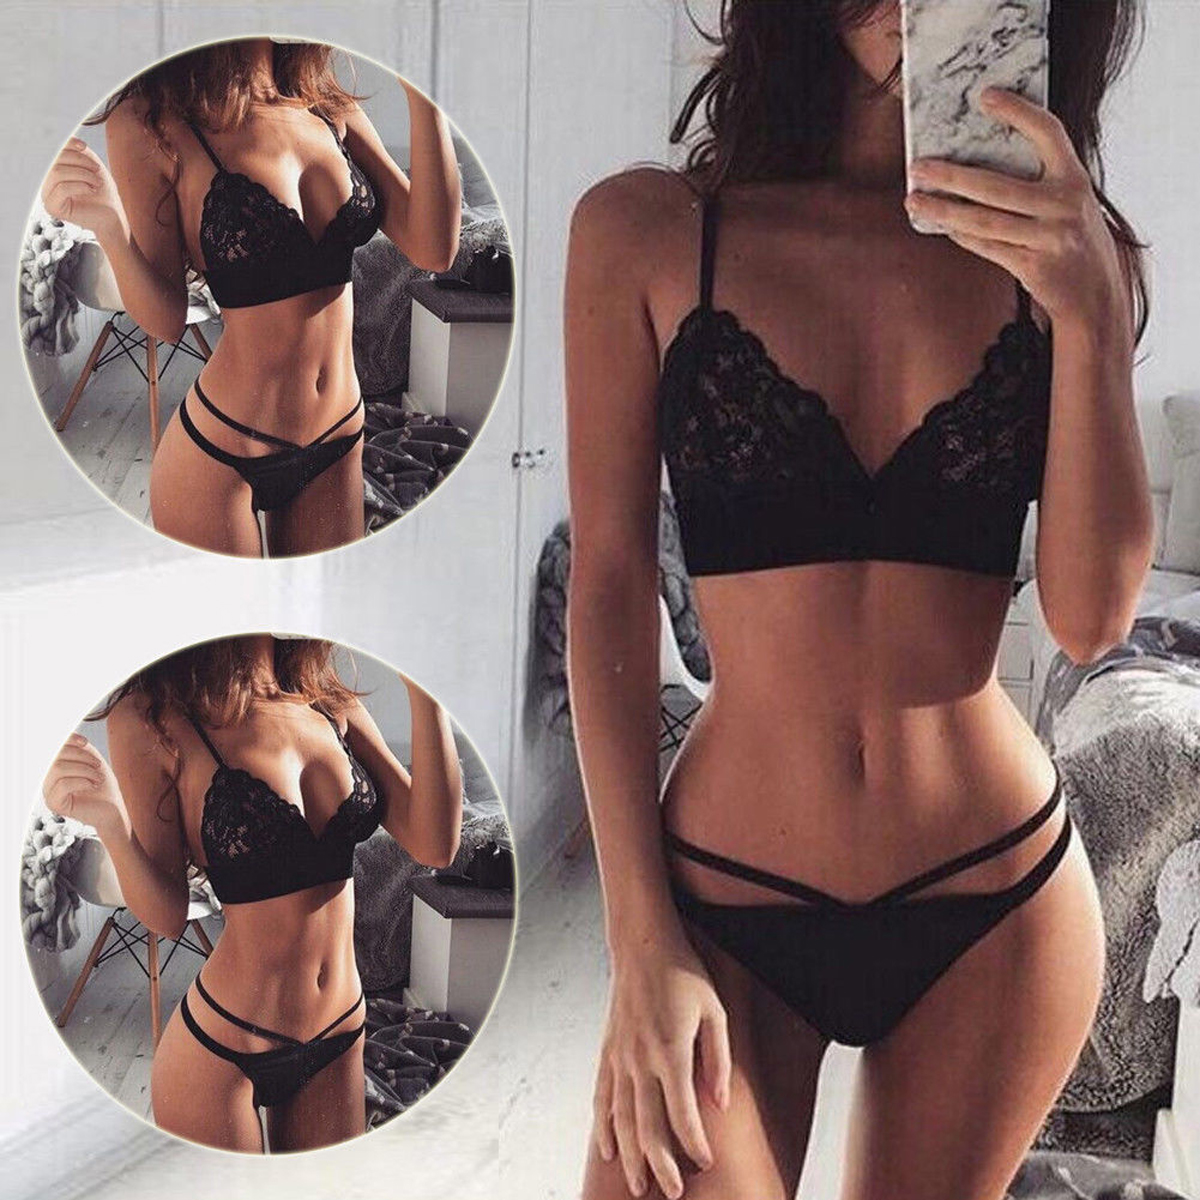 8ce9fcf301 THEFOUND Hot Women Clothing Sexy Sissy Black Lace Bra Set Lingerie Thong  See Through Push Up Bralette-in Bras from Underwear   Sleepwears on  Aliexpress.com ...